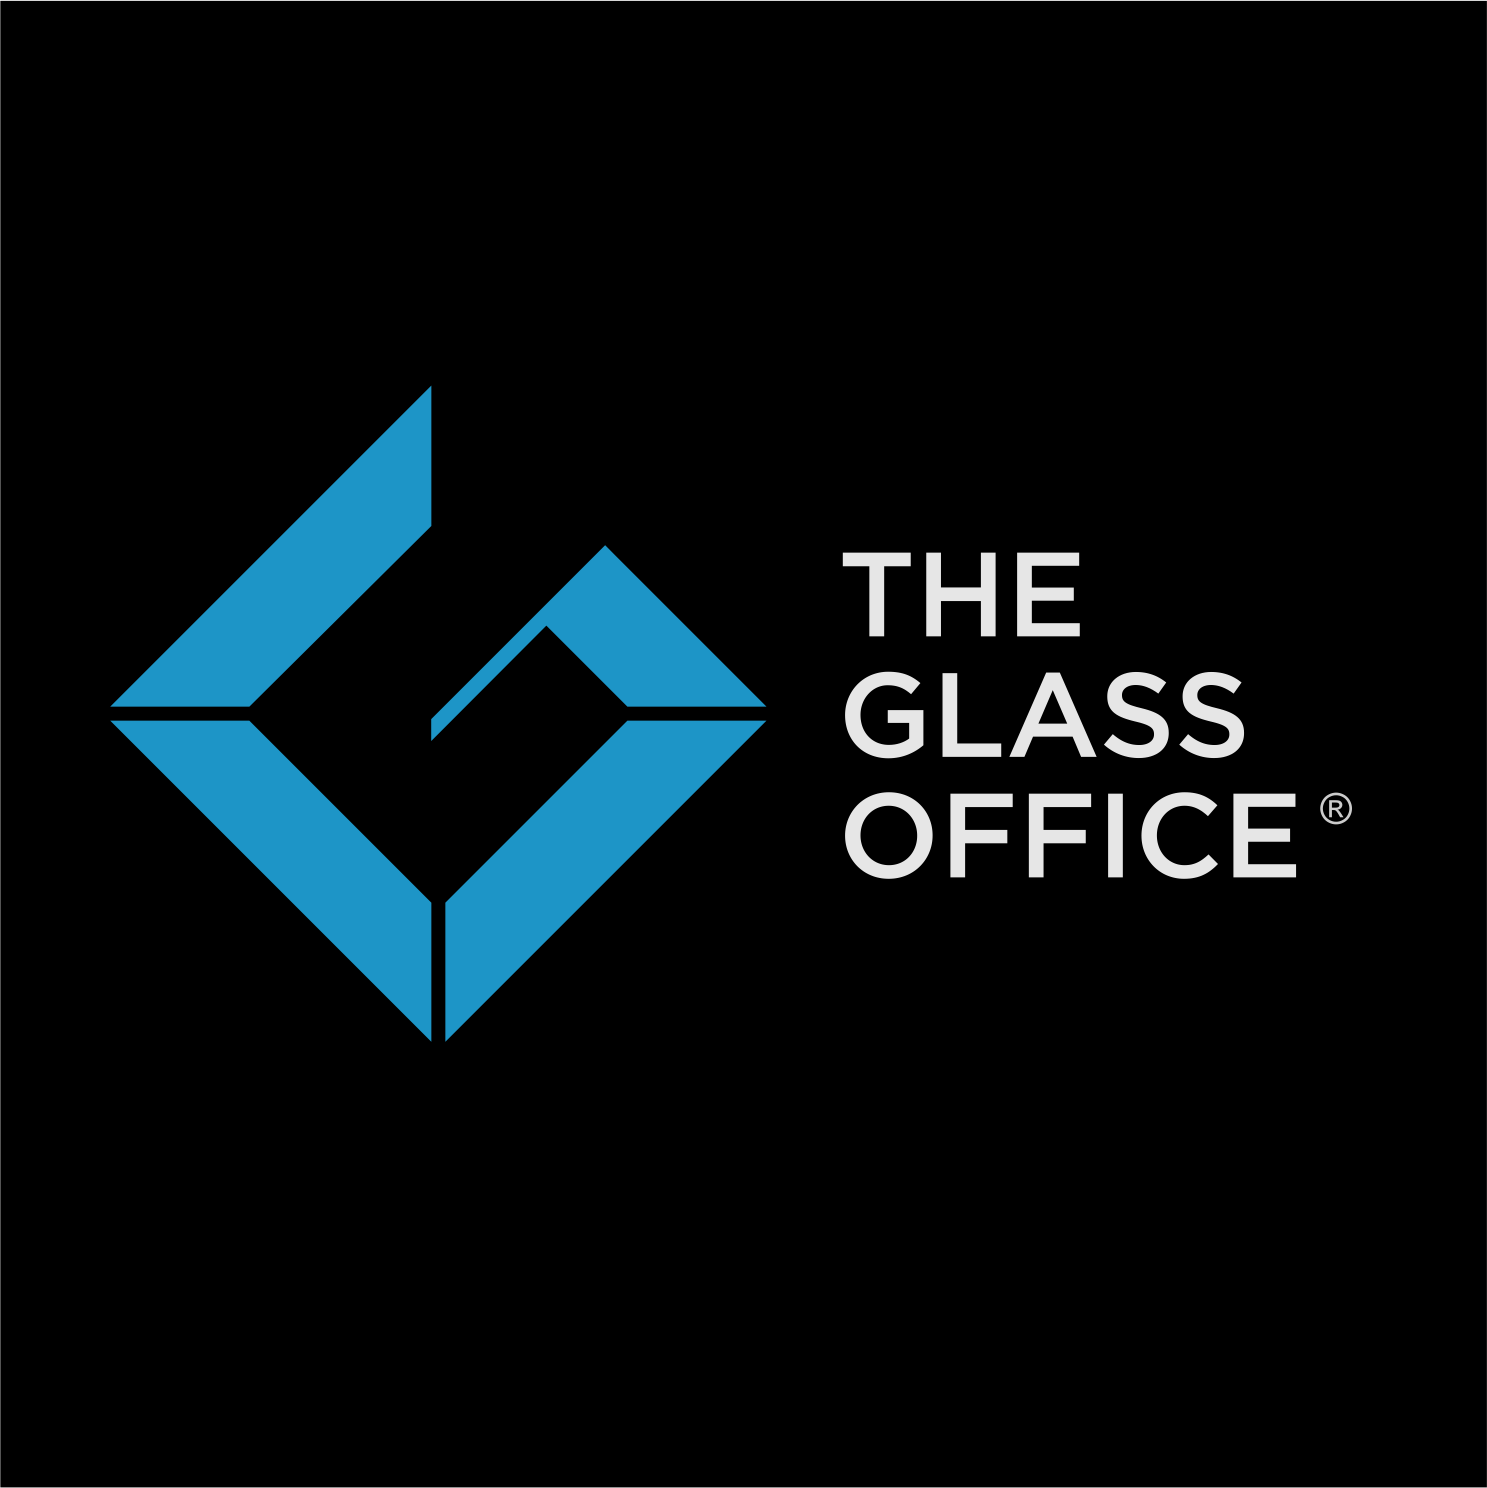 Design a powerful logo for glass office products